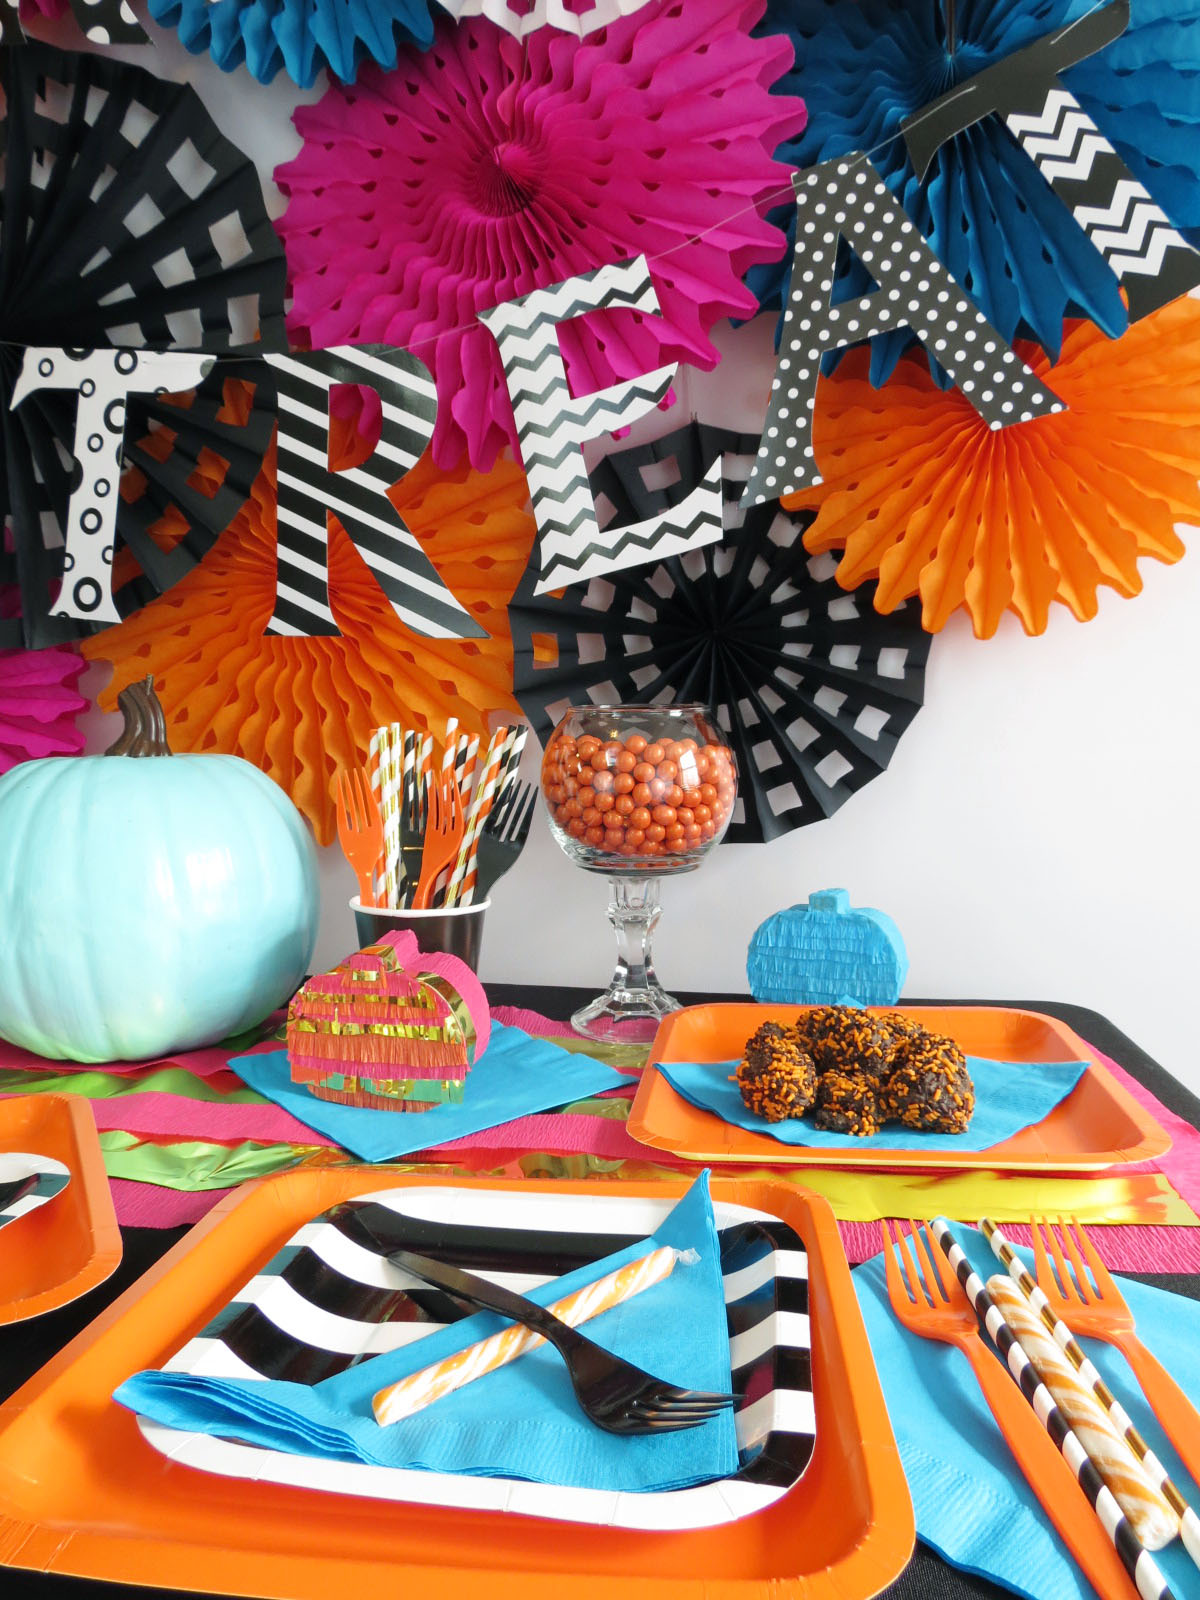 Halloween is coming, and I'm just so excited! I decided to give the traditional Halloween party a face-lift with a fresh color palette. It's fun, glam and has just the right amount of spooky. Click to find out all the details!